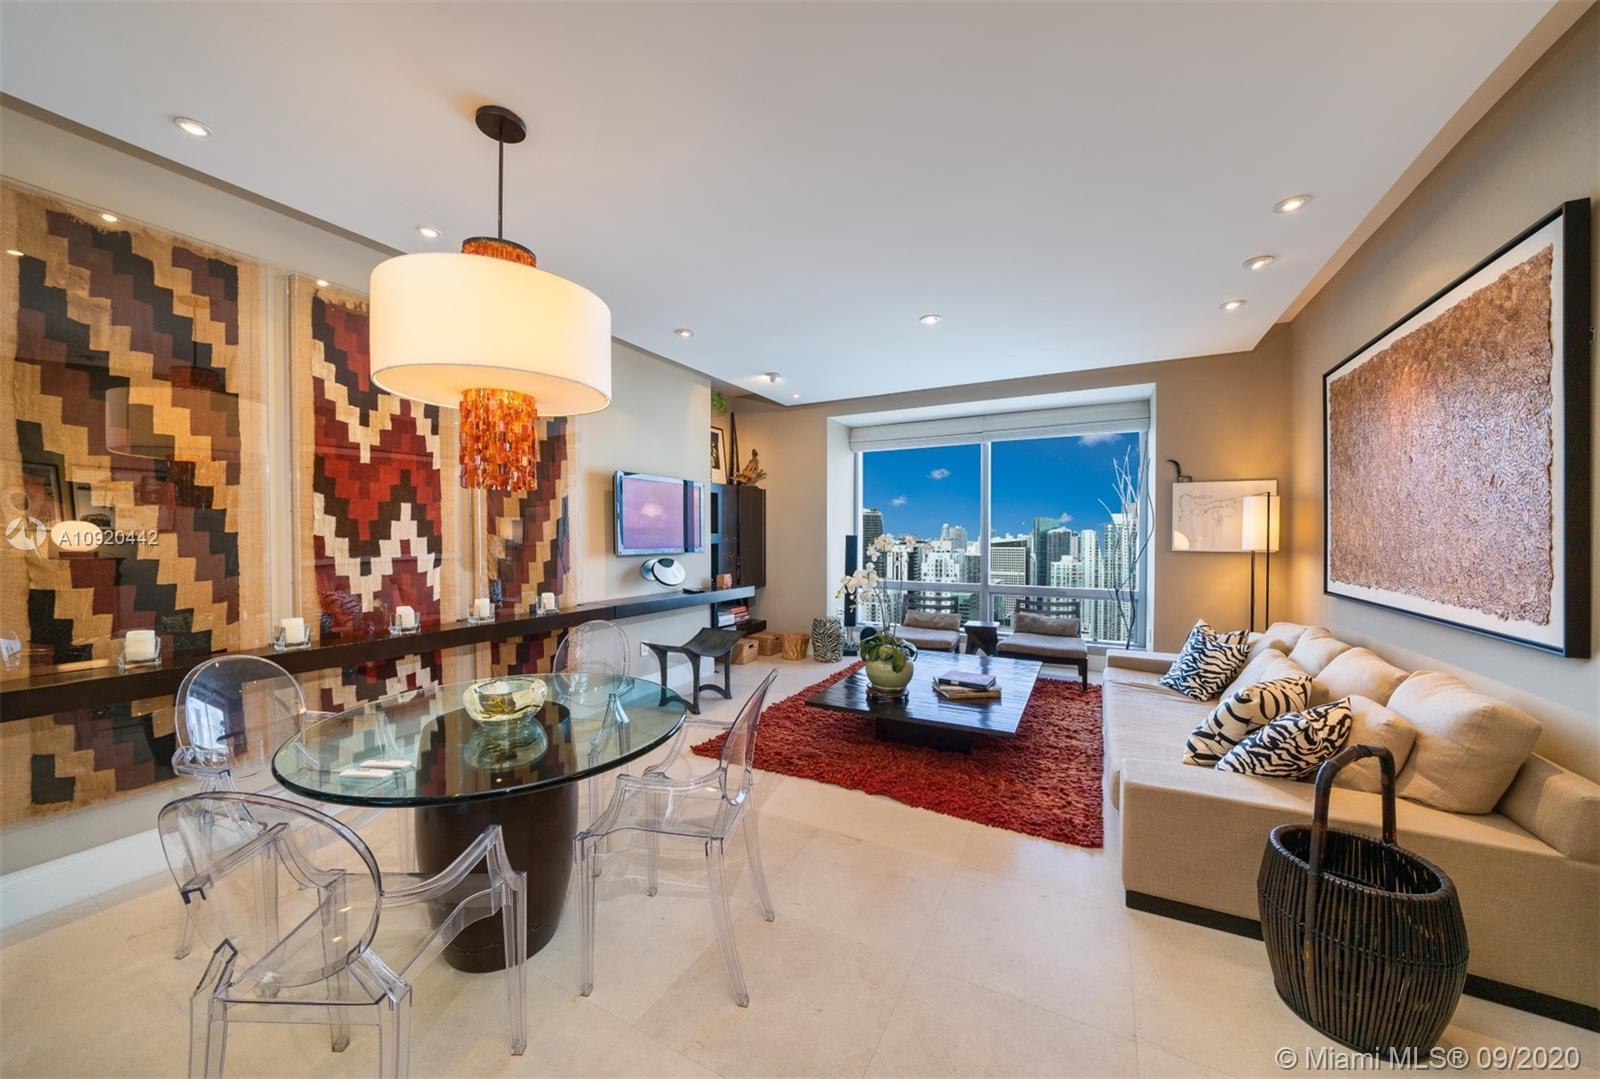 OUTSTANDING RESIDENCE ON THE 52nd FLOOR AT FOUR SEASONS RESIDENCES MIAMI. THIS MASTERPIECE SHOWCASES